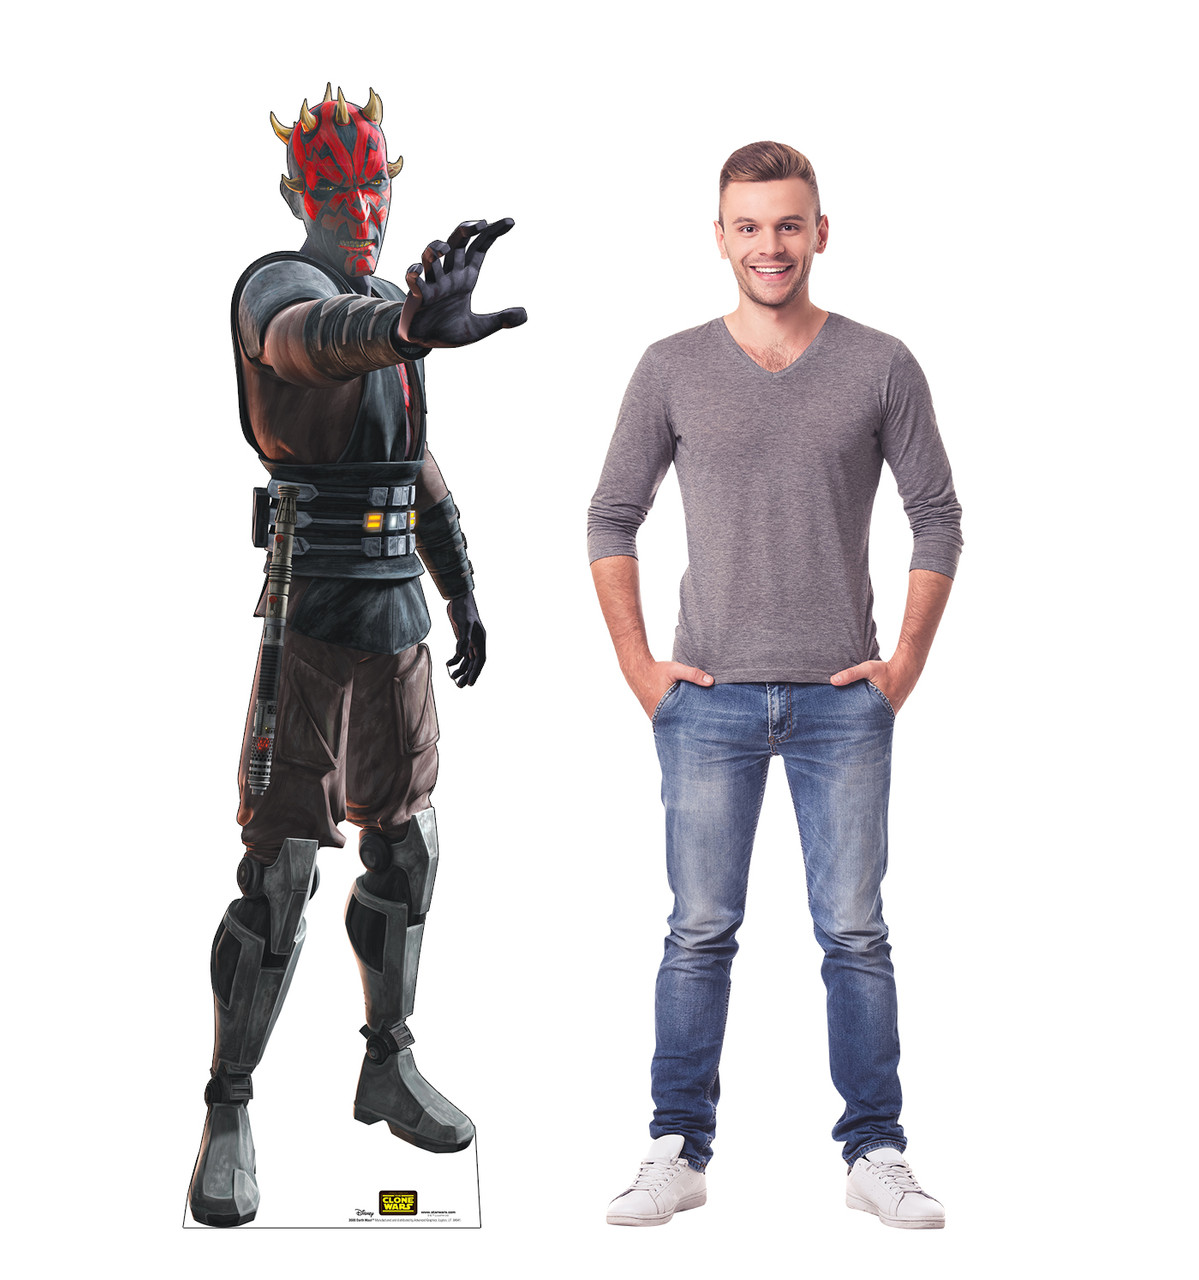 Life-size cardboard standee of the character Darth Maul from Clone Wars Season 7 with model.